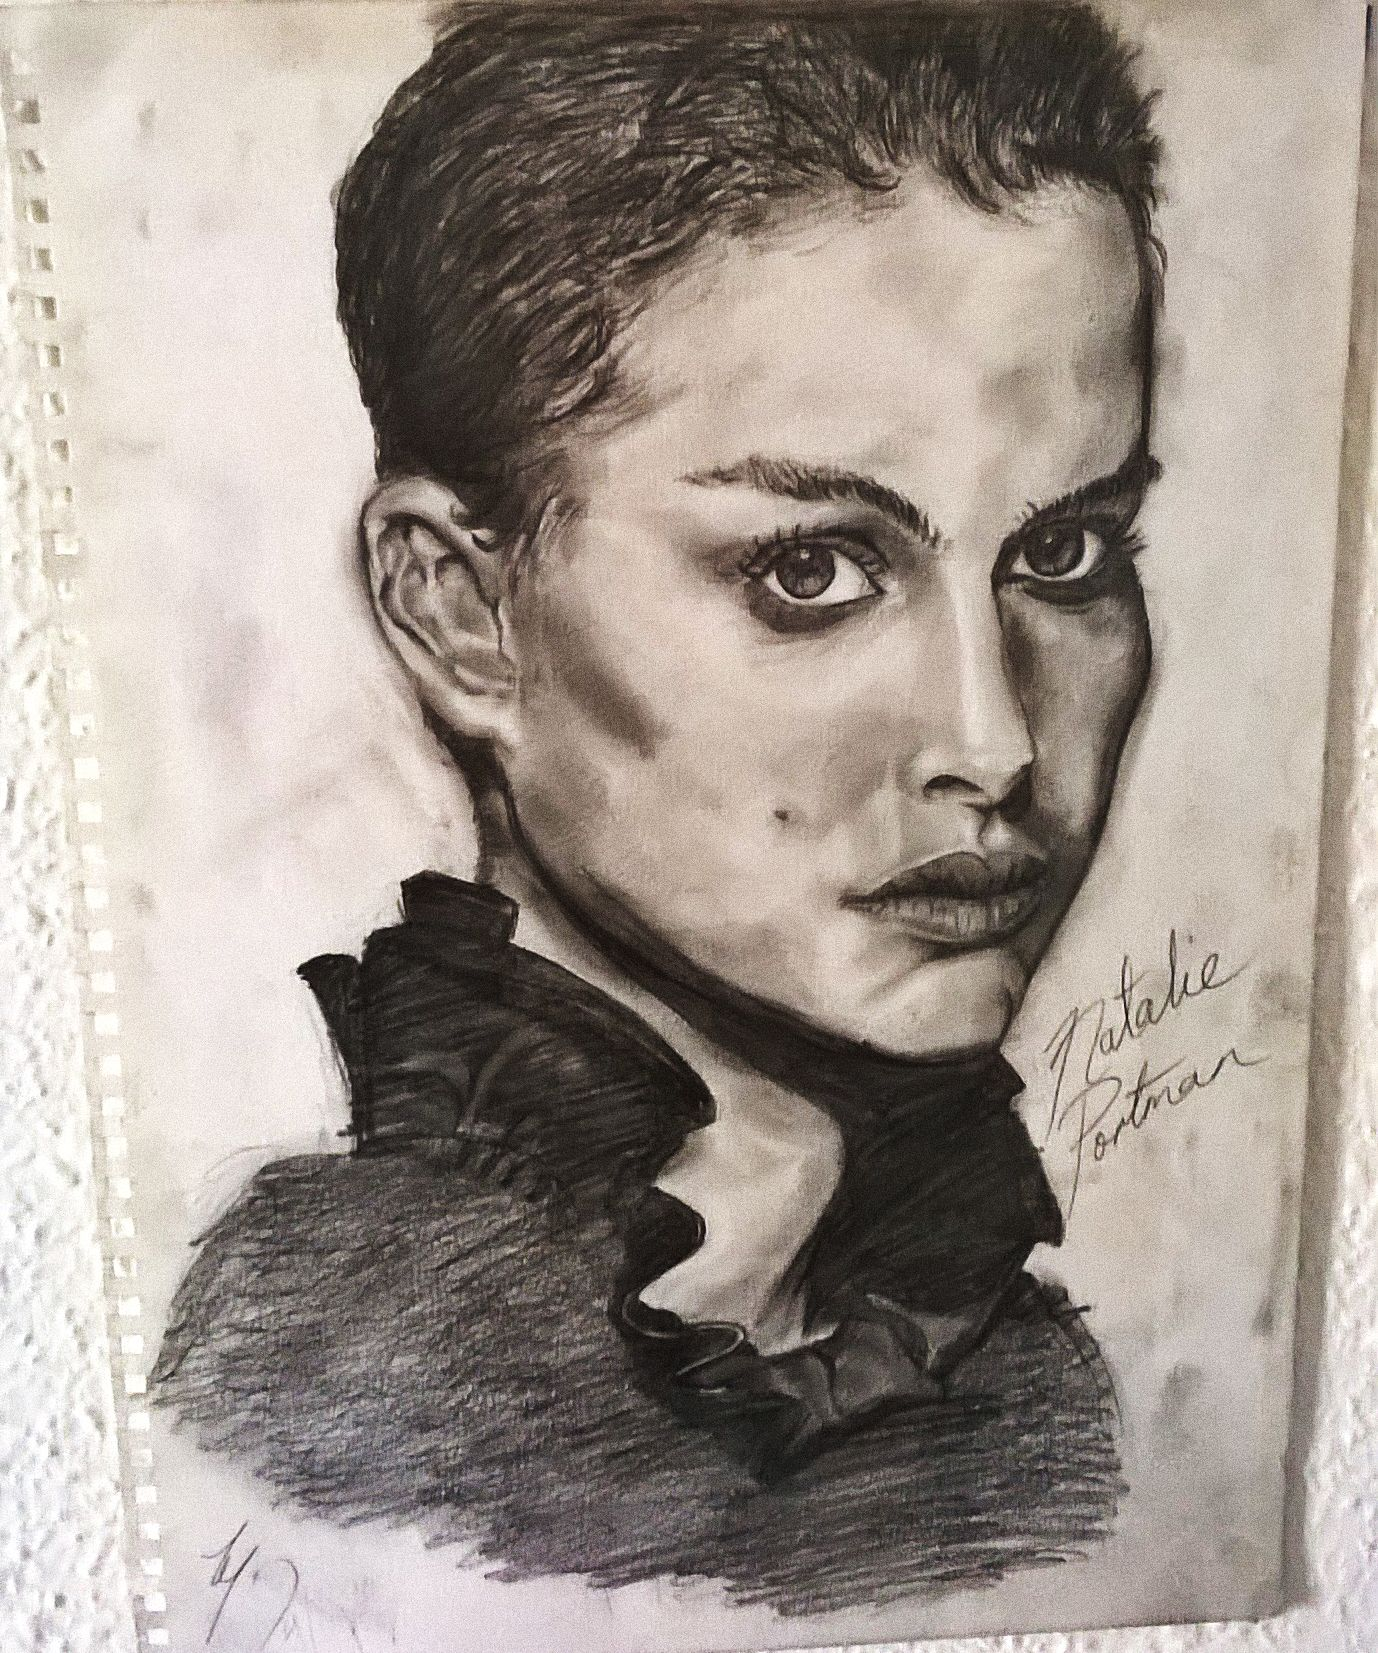 A Sketch of Natalie Portman. (With images) Freelance